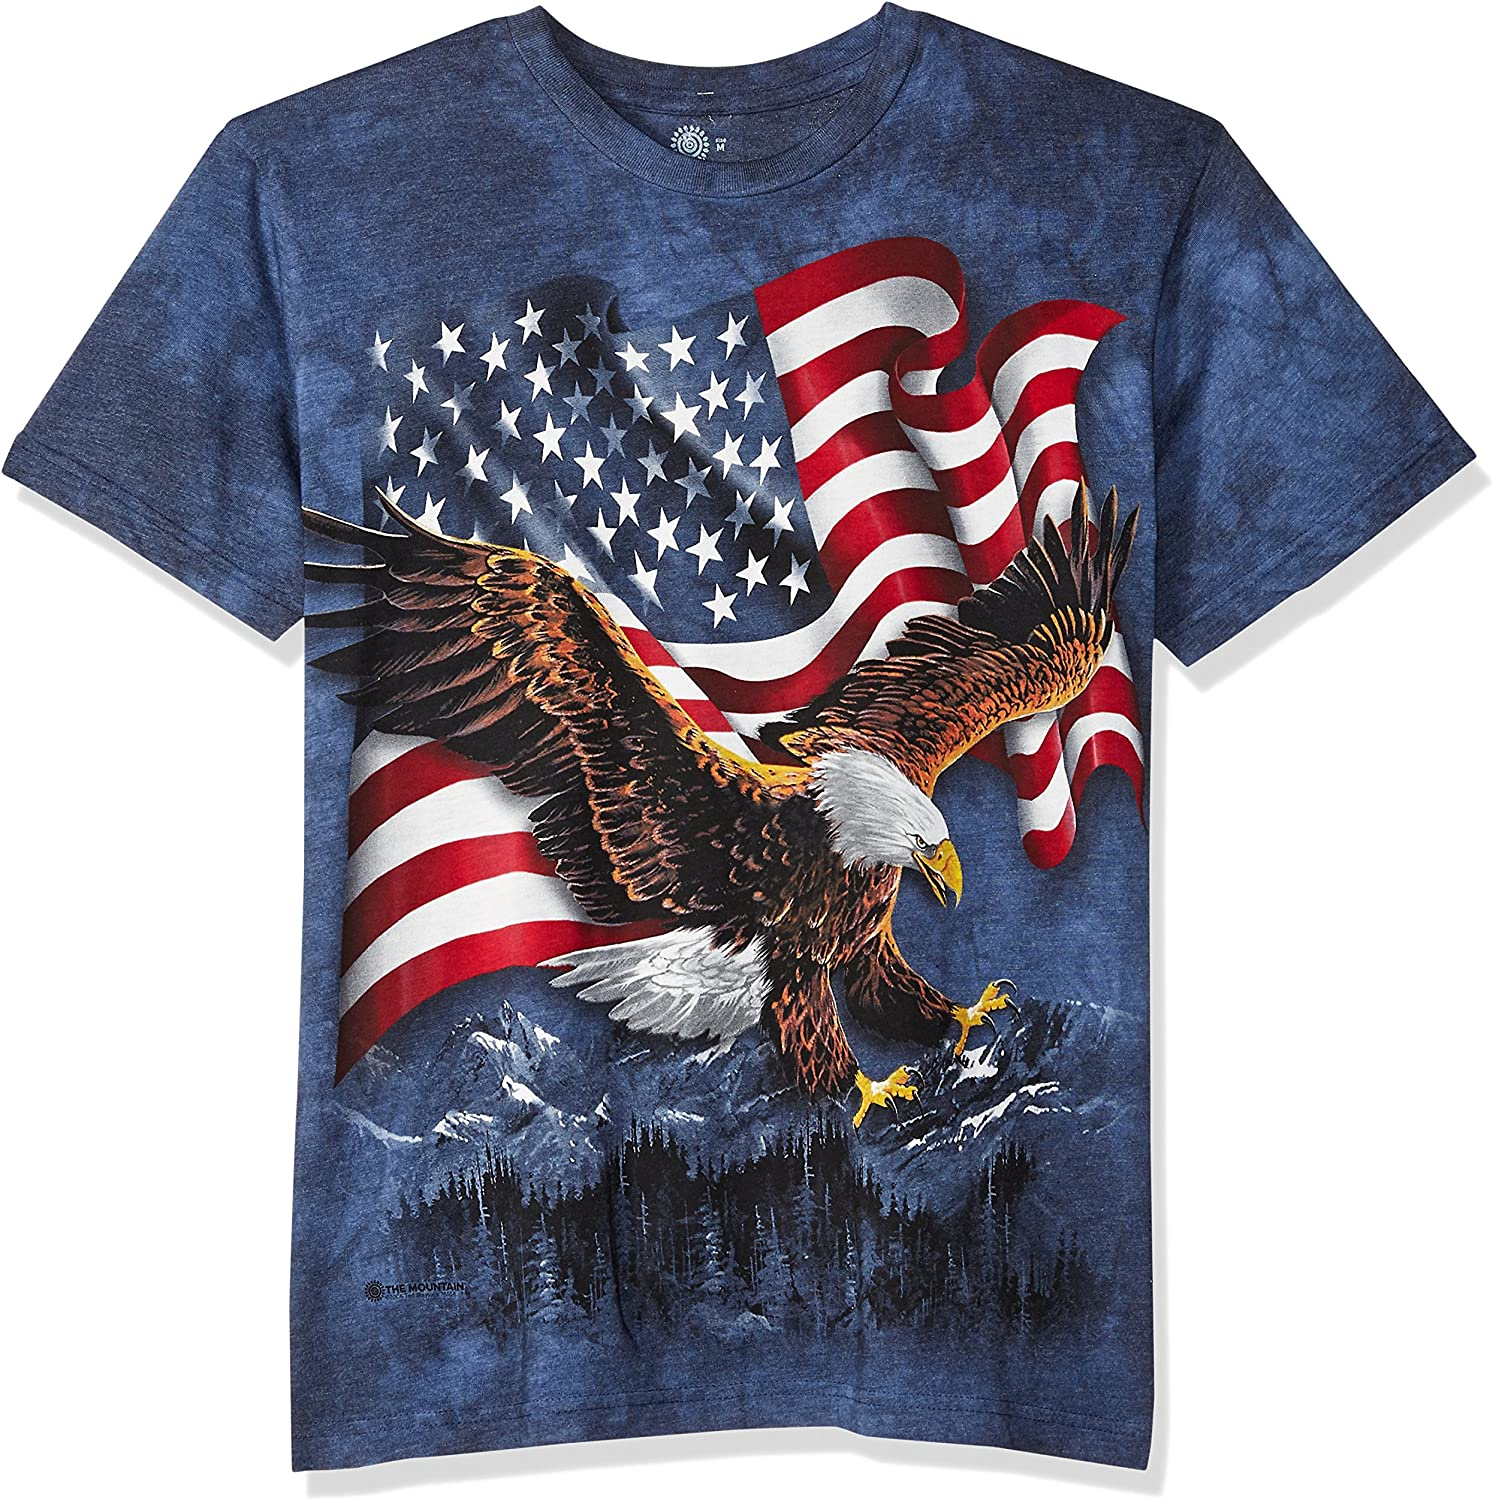 The Mountain Eagle Talon USA Flag Adult Unisex T-Shirt